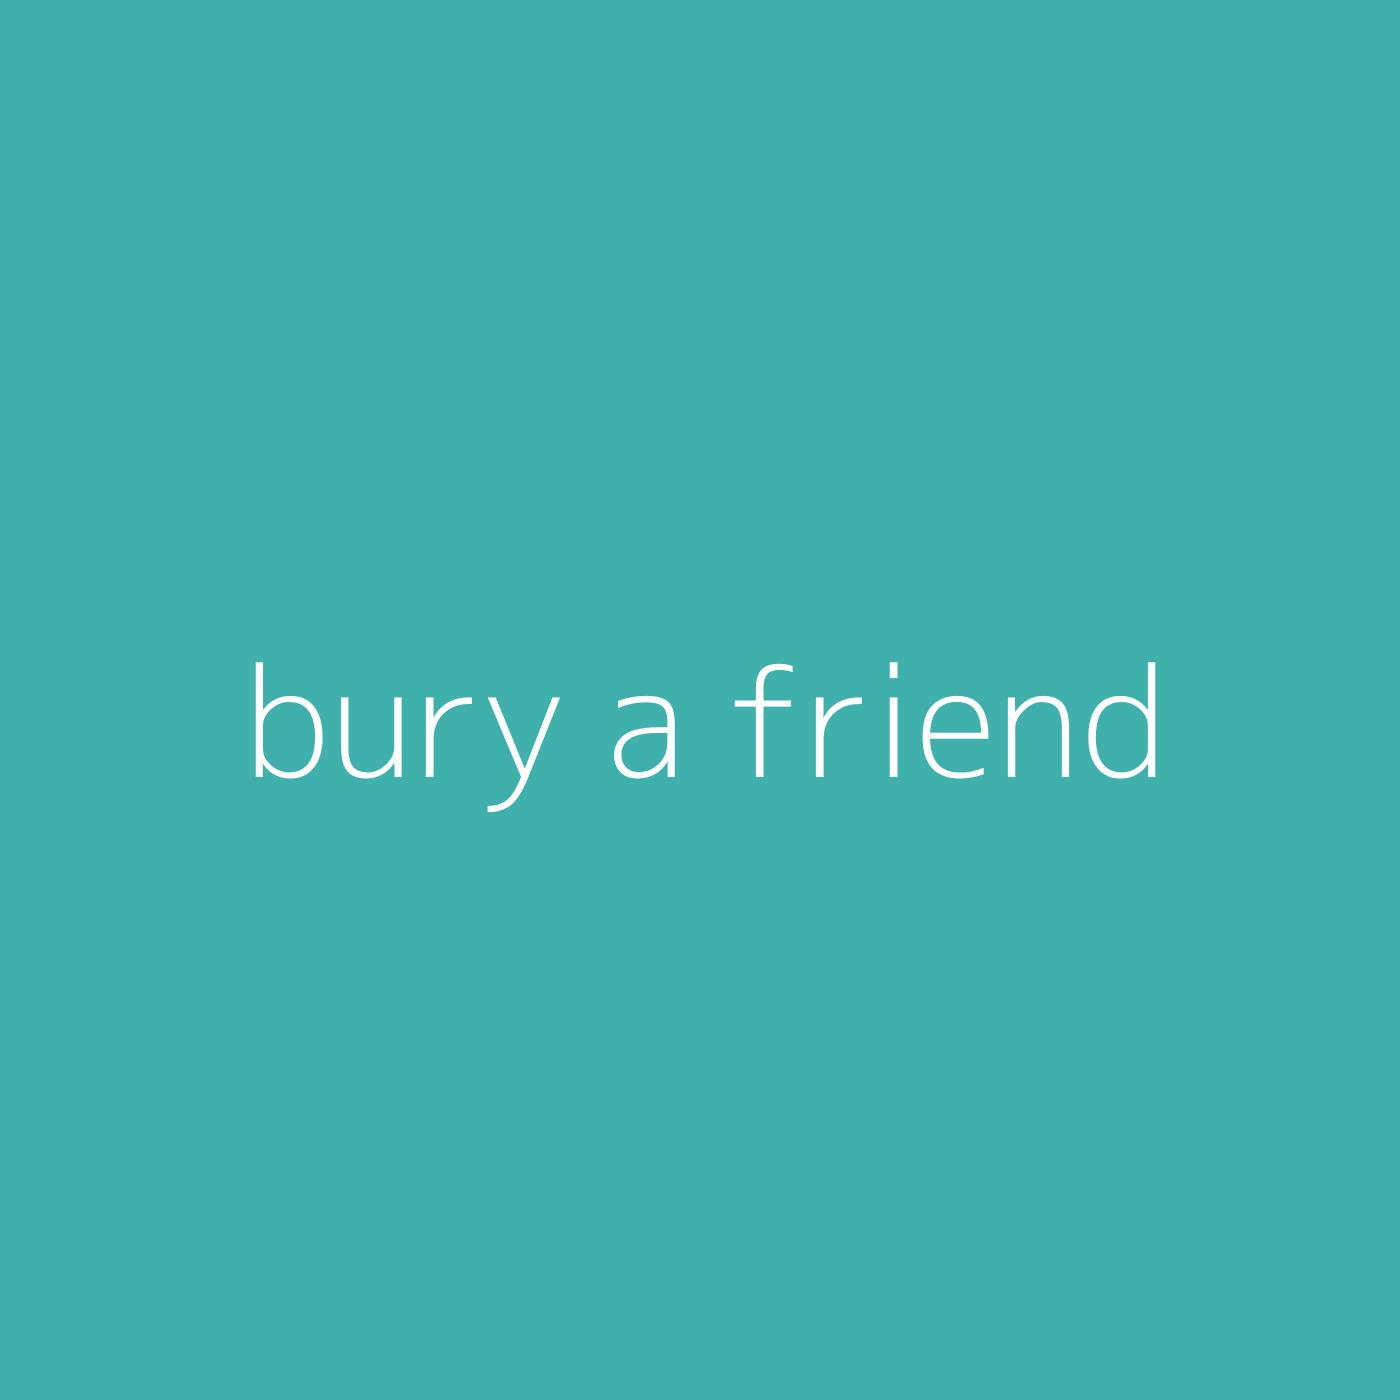 bury a friend – Billie Eilish